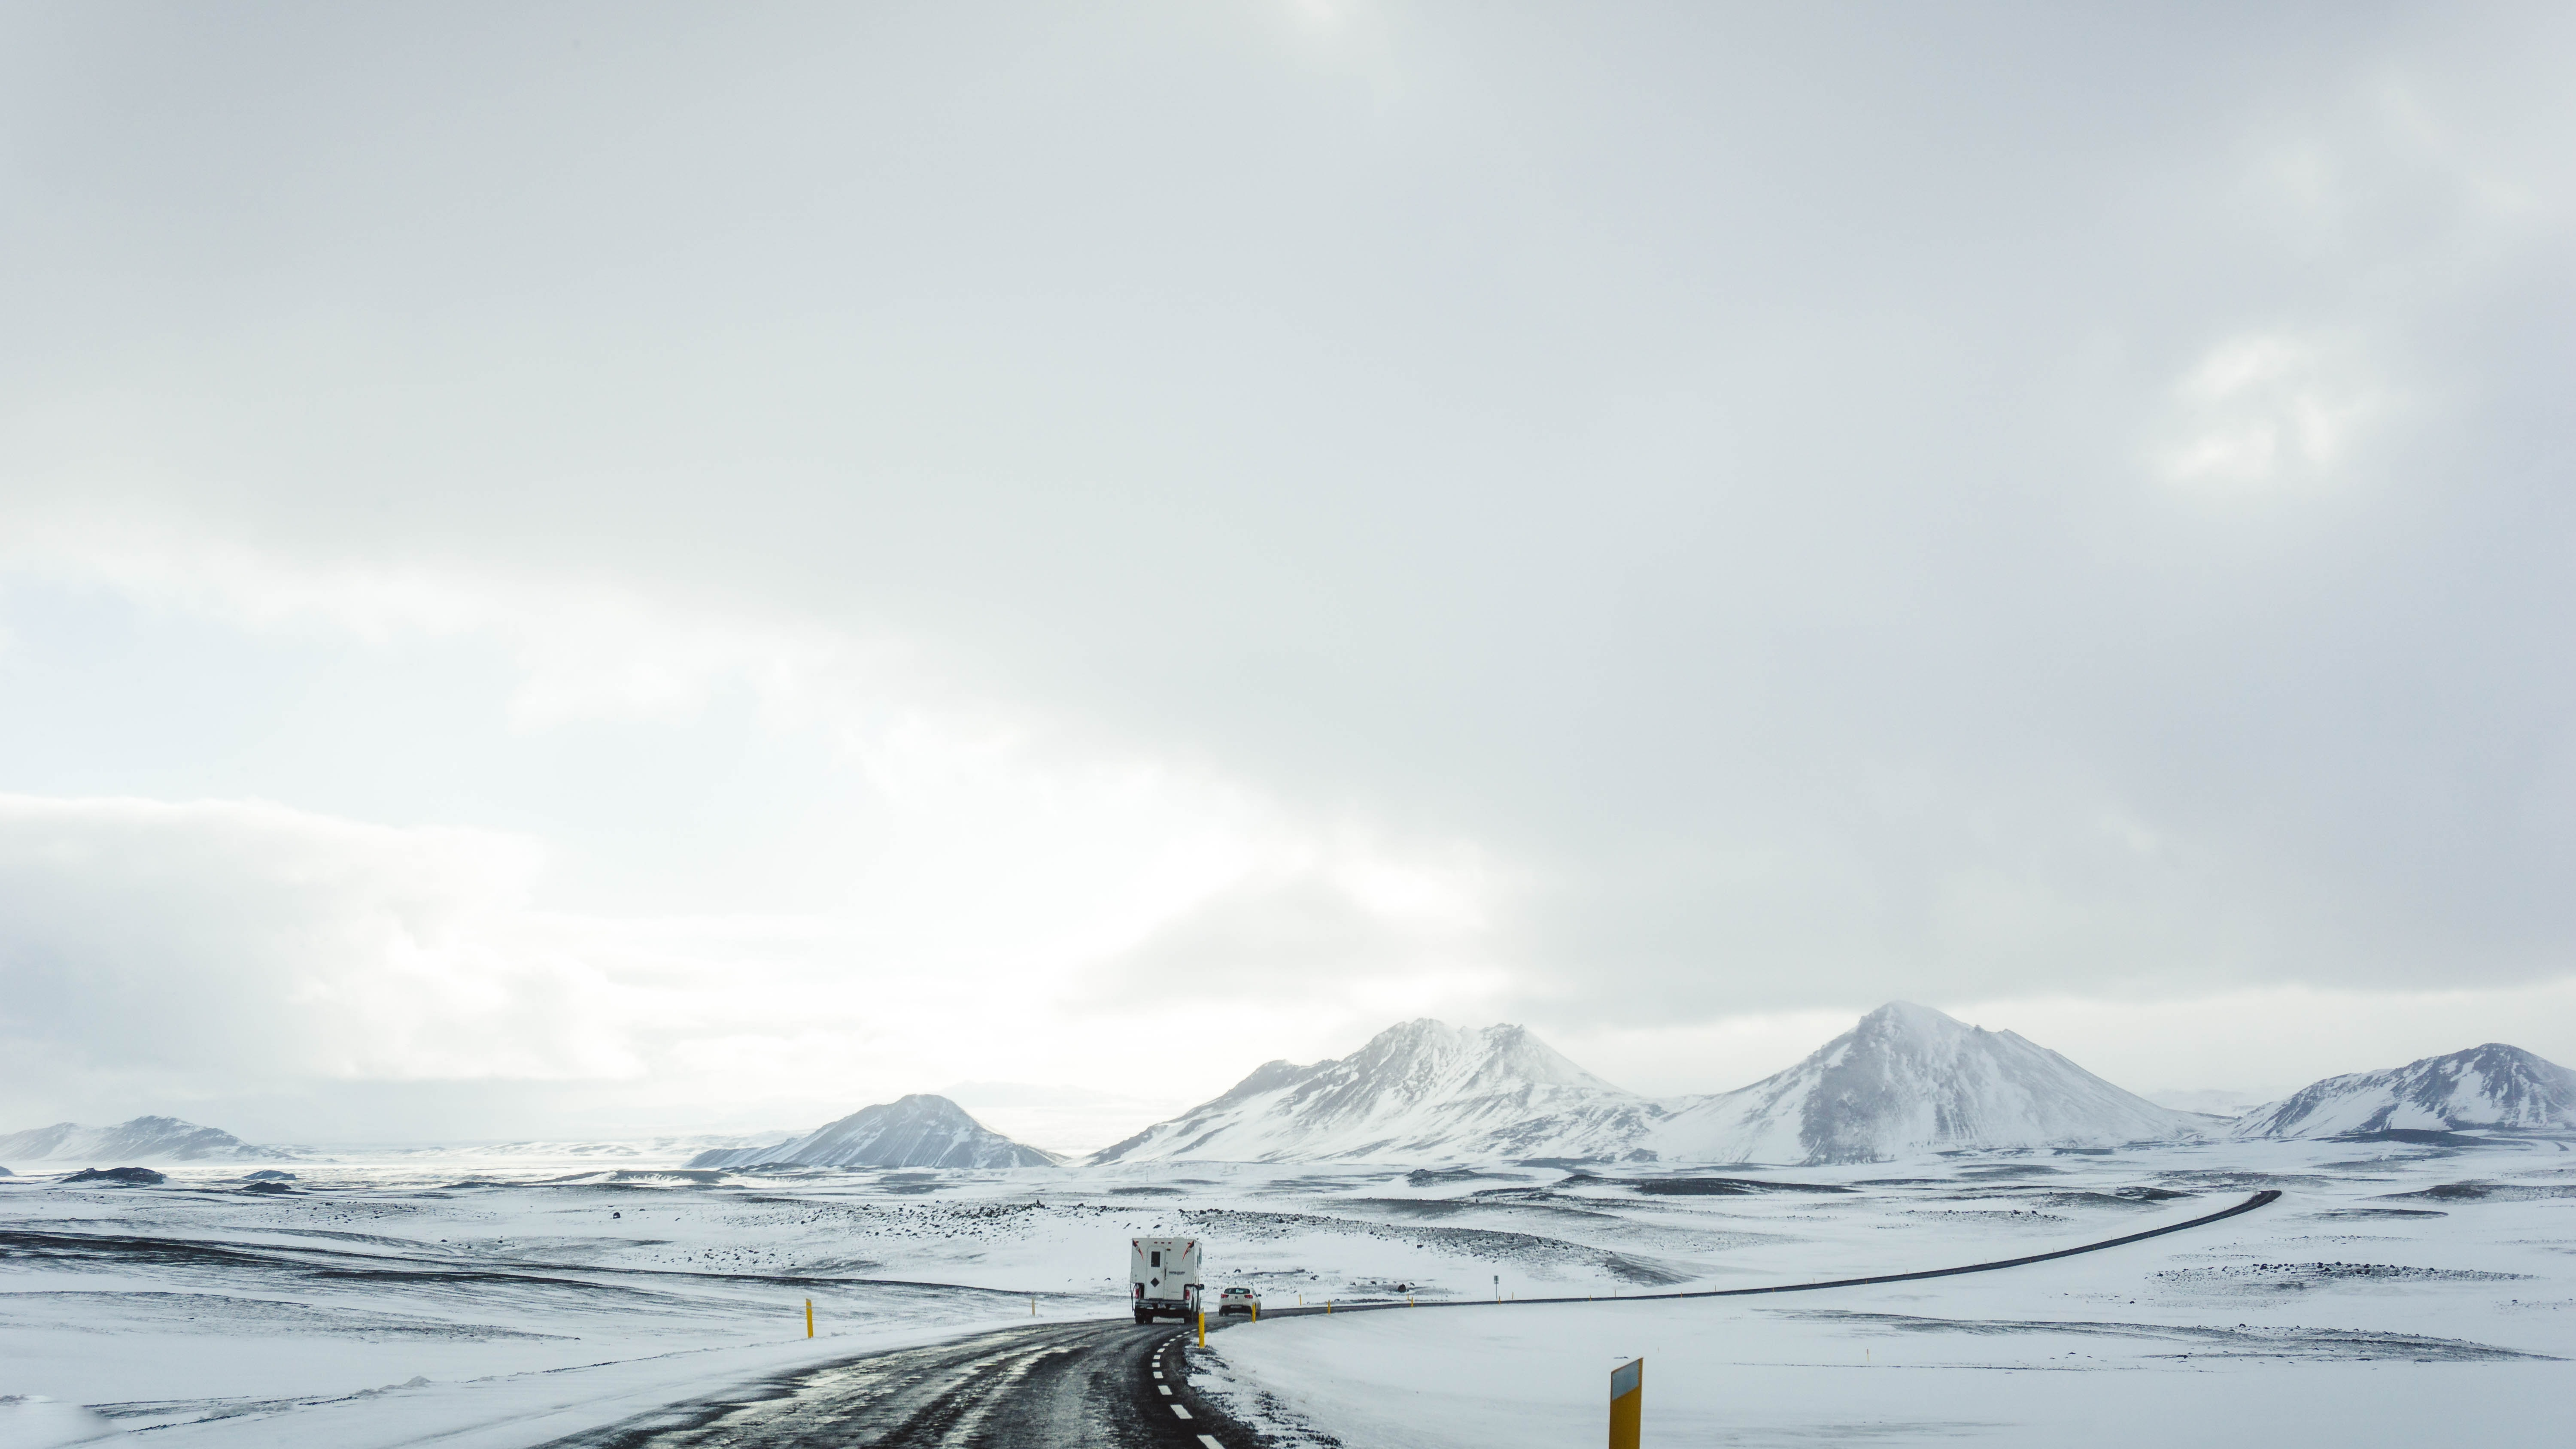 landscape photo of mountains covered with snow